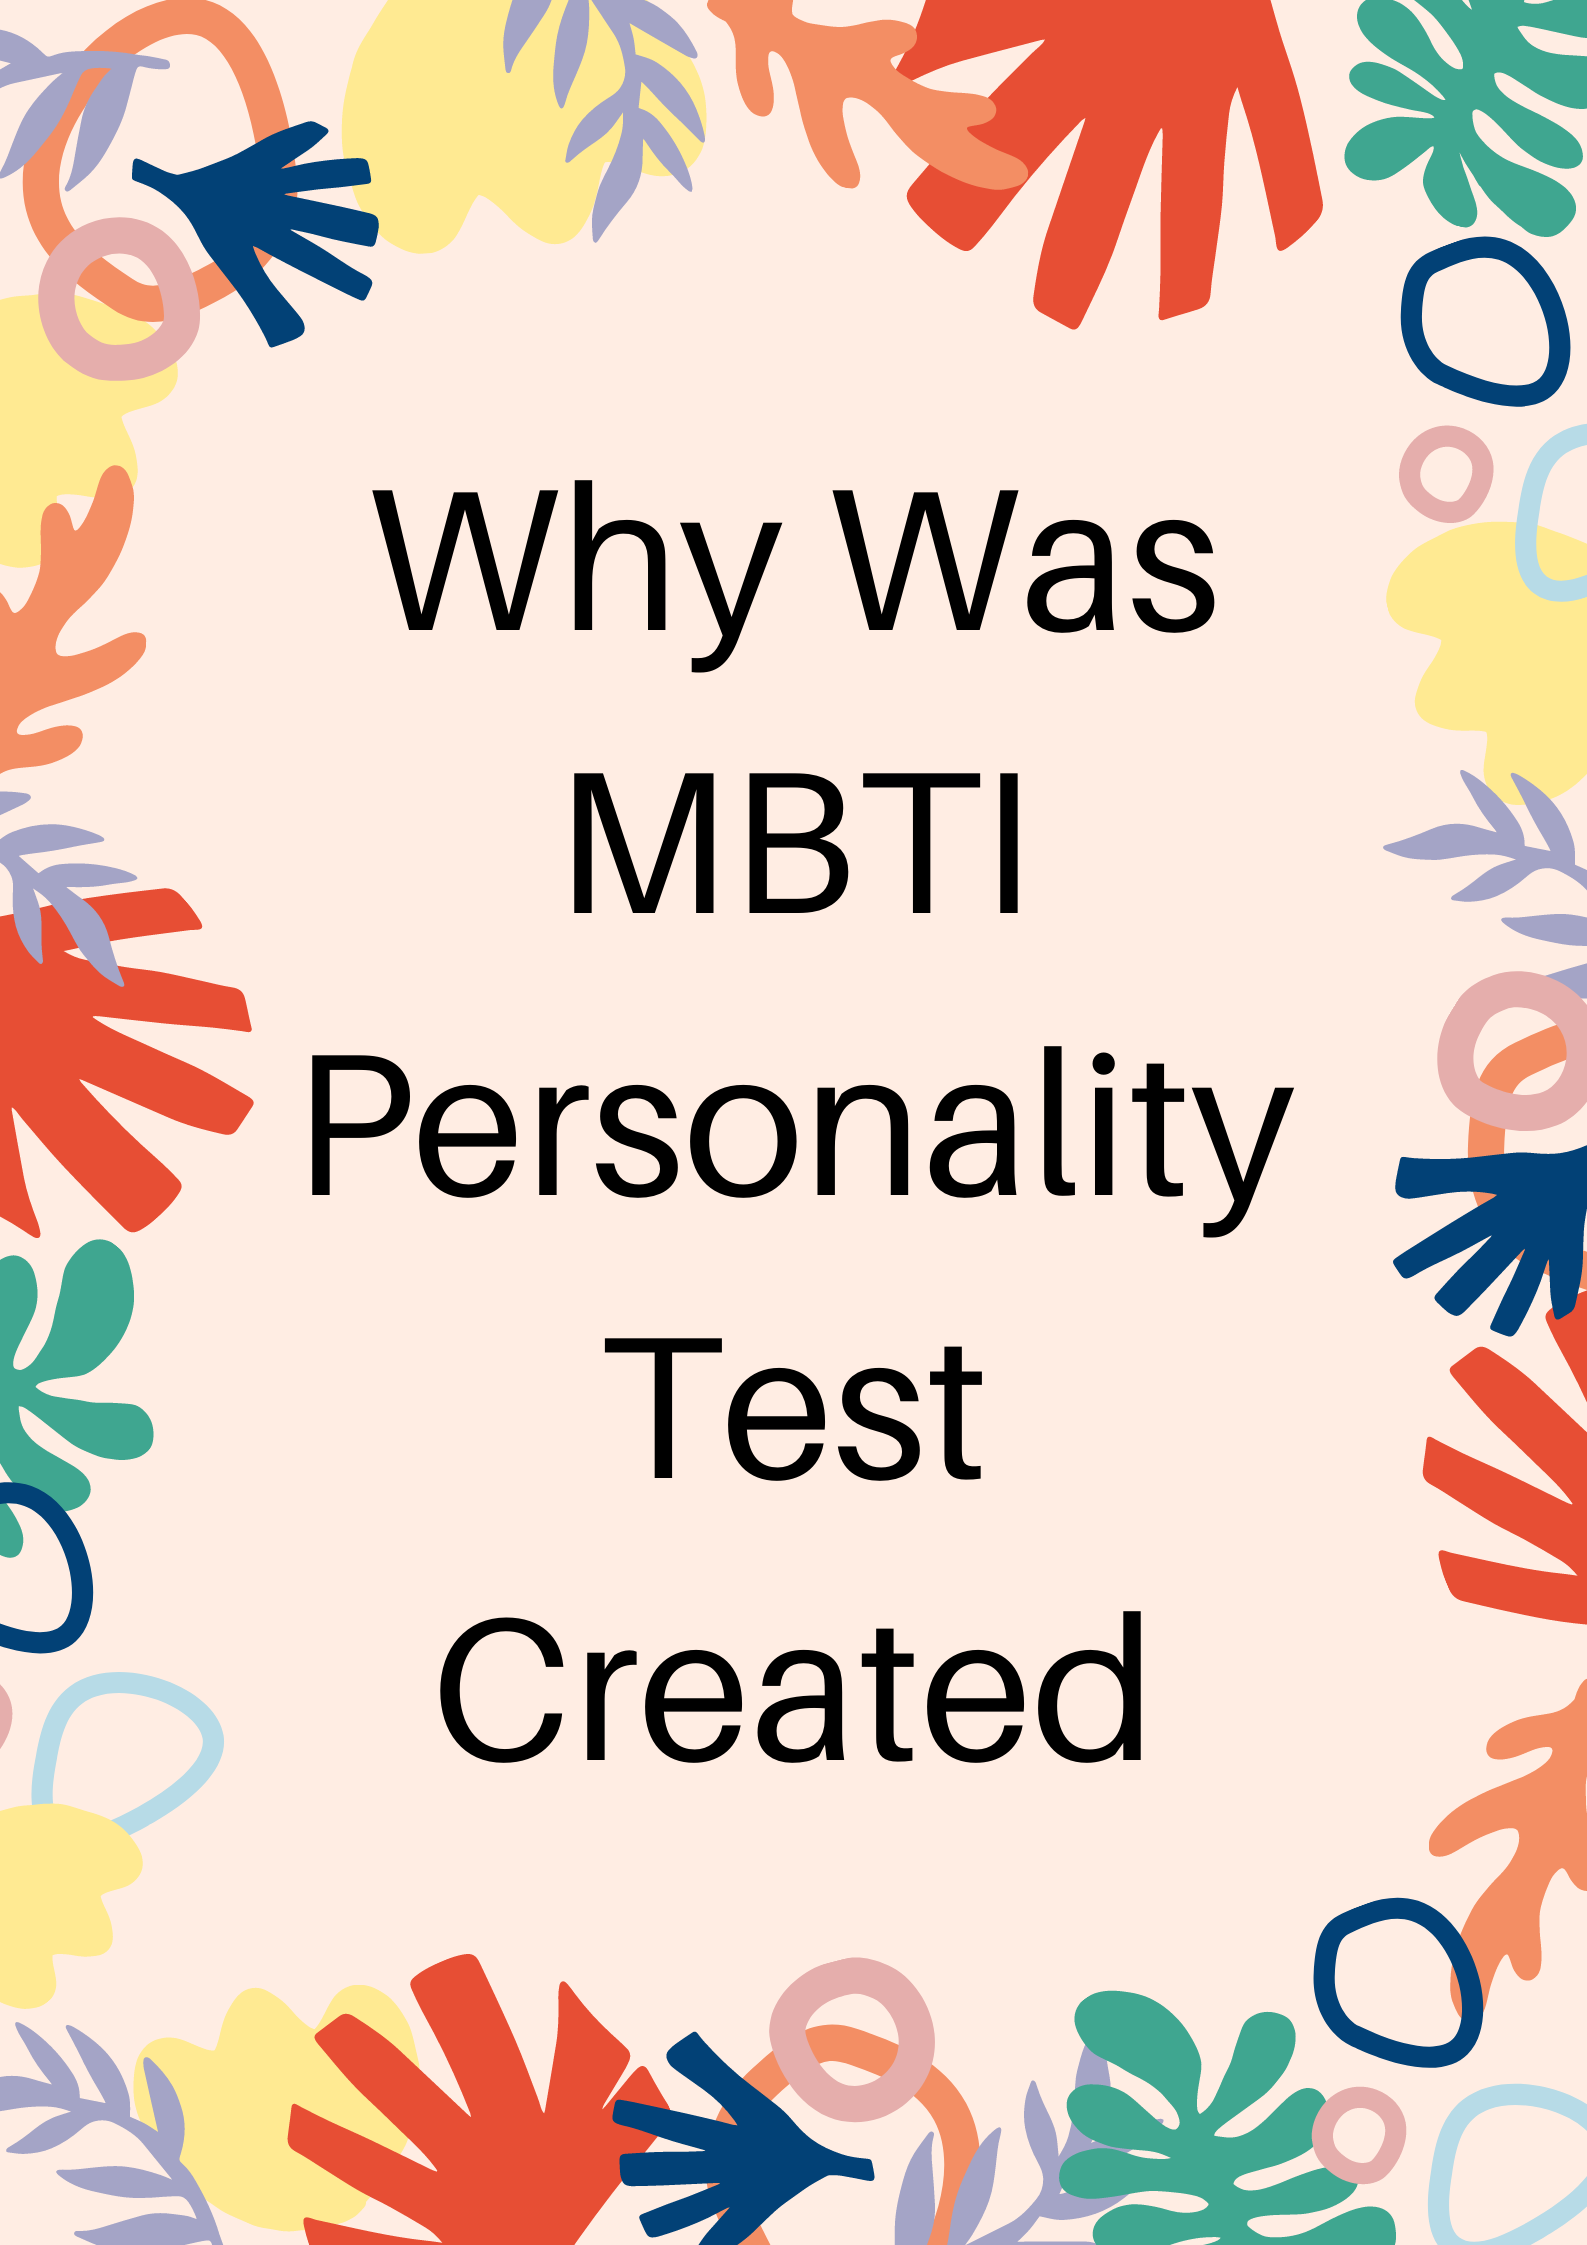 Why was MBTI Personality Test Created.png